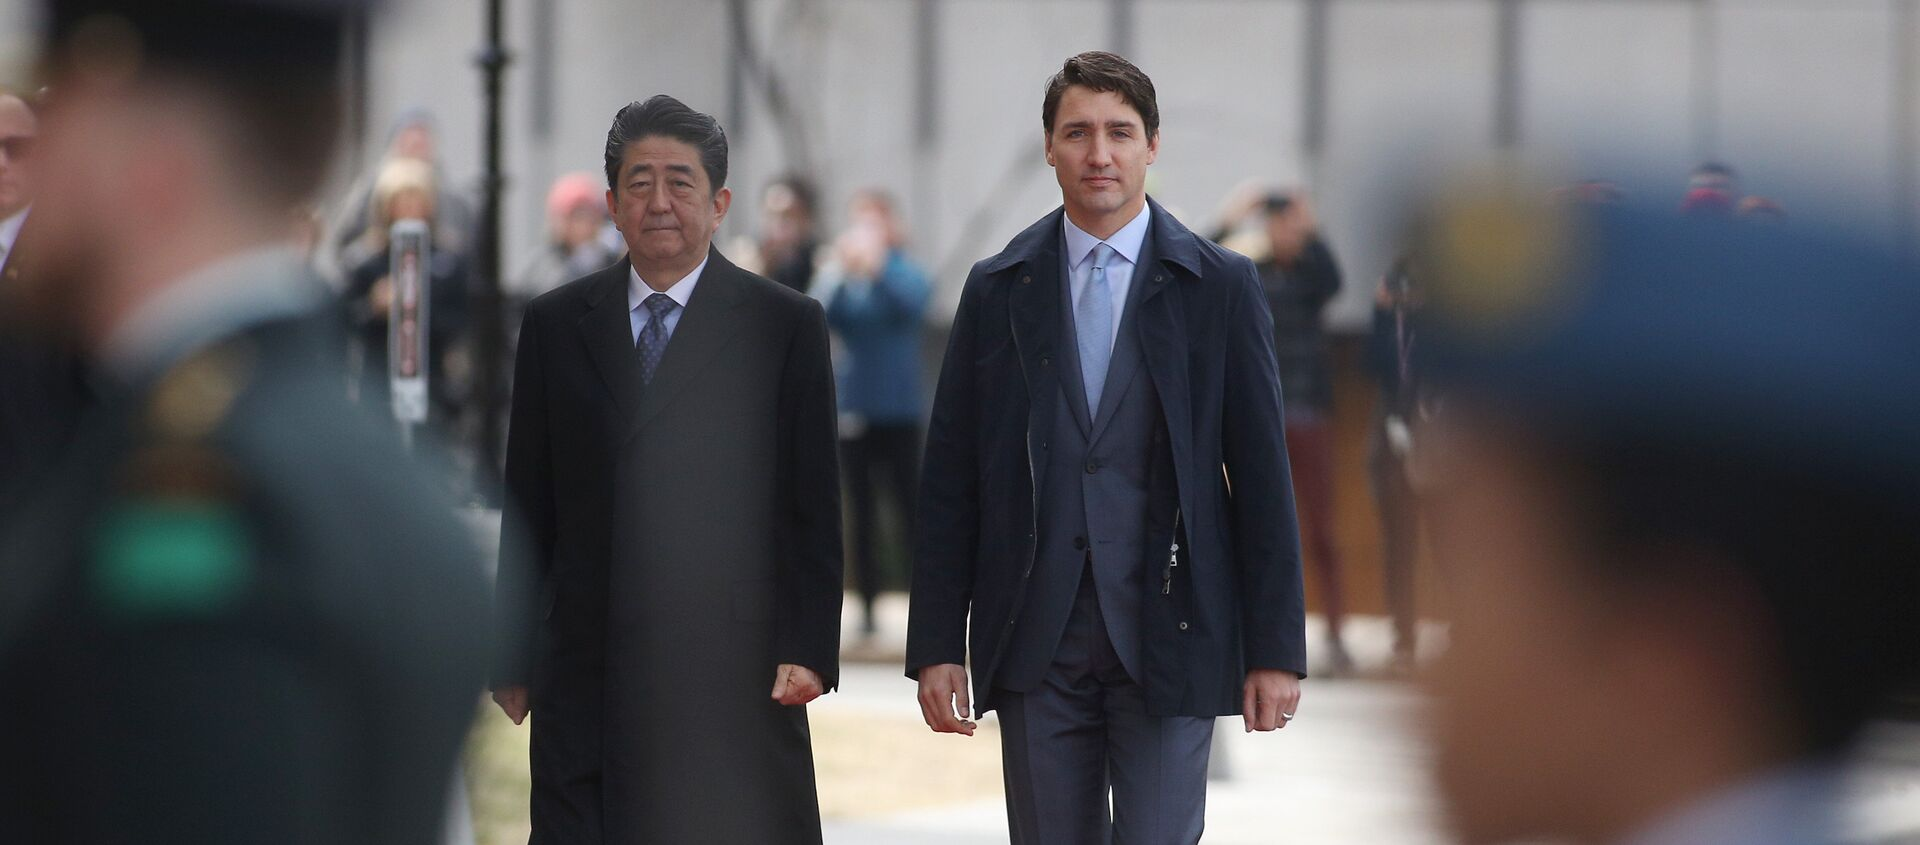 Japanese Prime Minister Shinzo Abe (L) walks with Canadian Prime Minister Justin Trudeau during a welcoming ceremony on Parliament Hill in Ottawa, Ontario, on April 28, 2019.  Lars Hagberg / AFP - Sputnik France, 1920, 30.04.2019